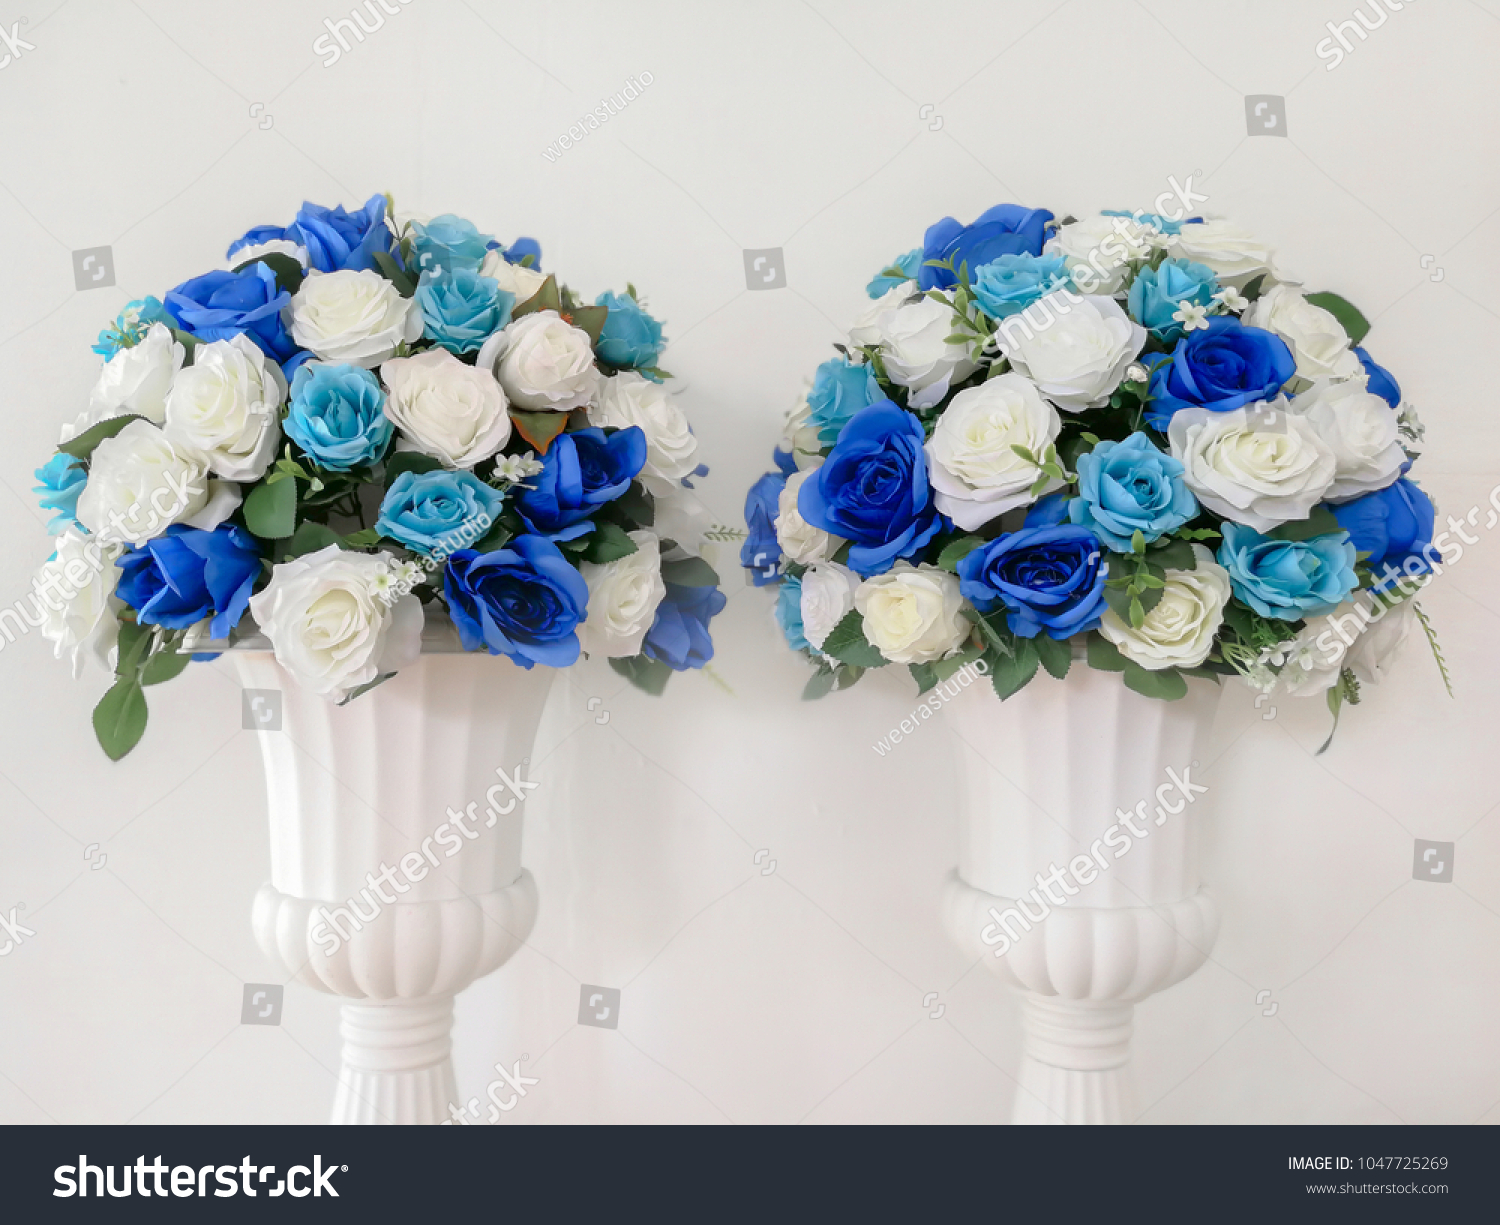 Artificial Flowers Roses Foam Pink Blue Stock Photo Edit Now 1047725269